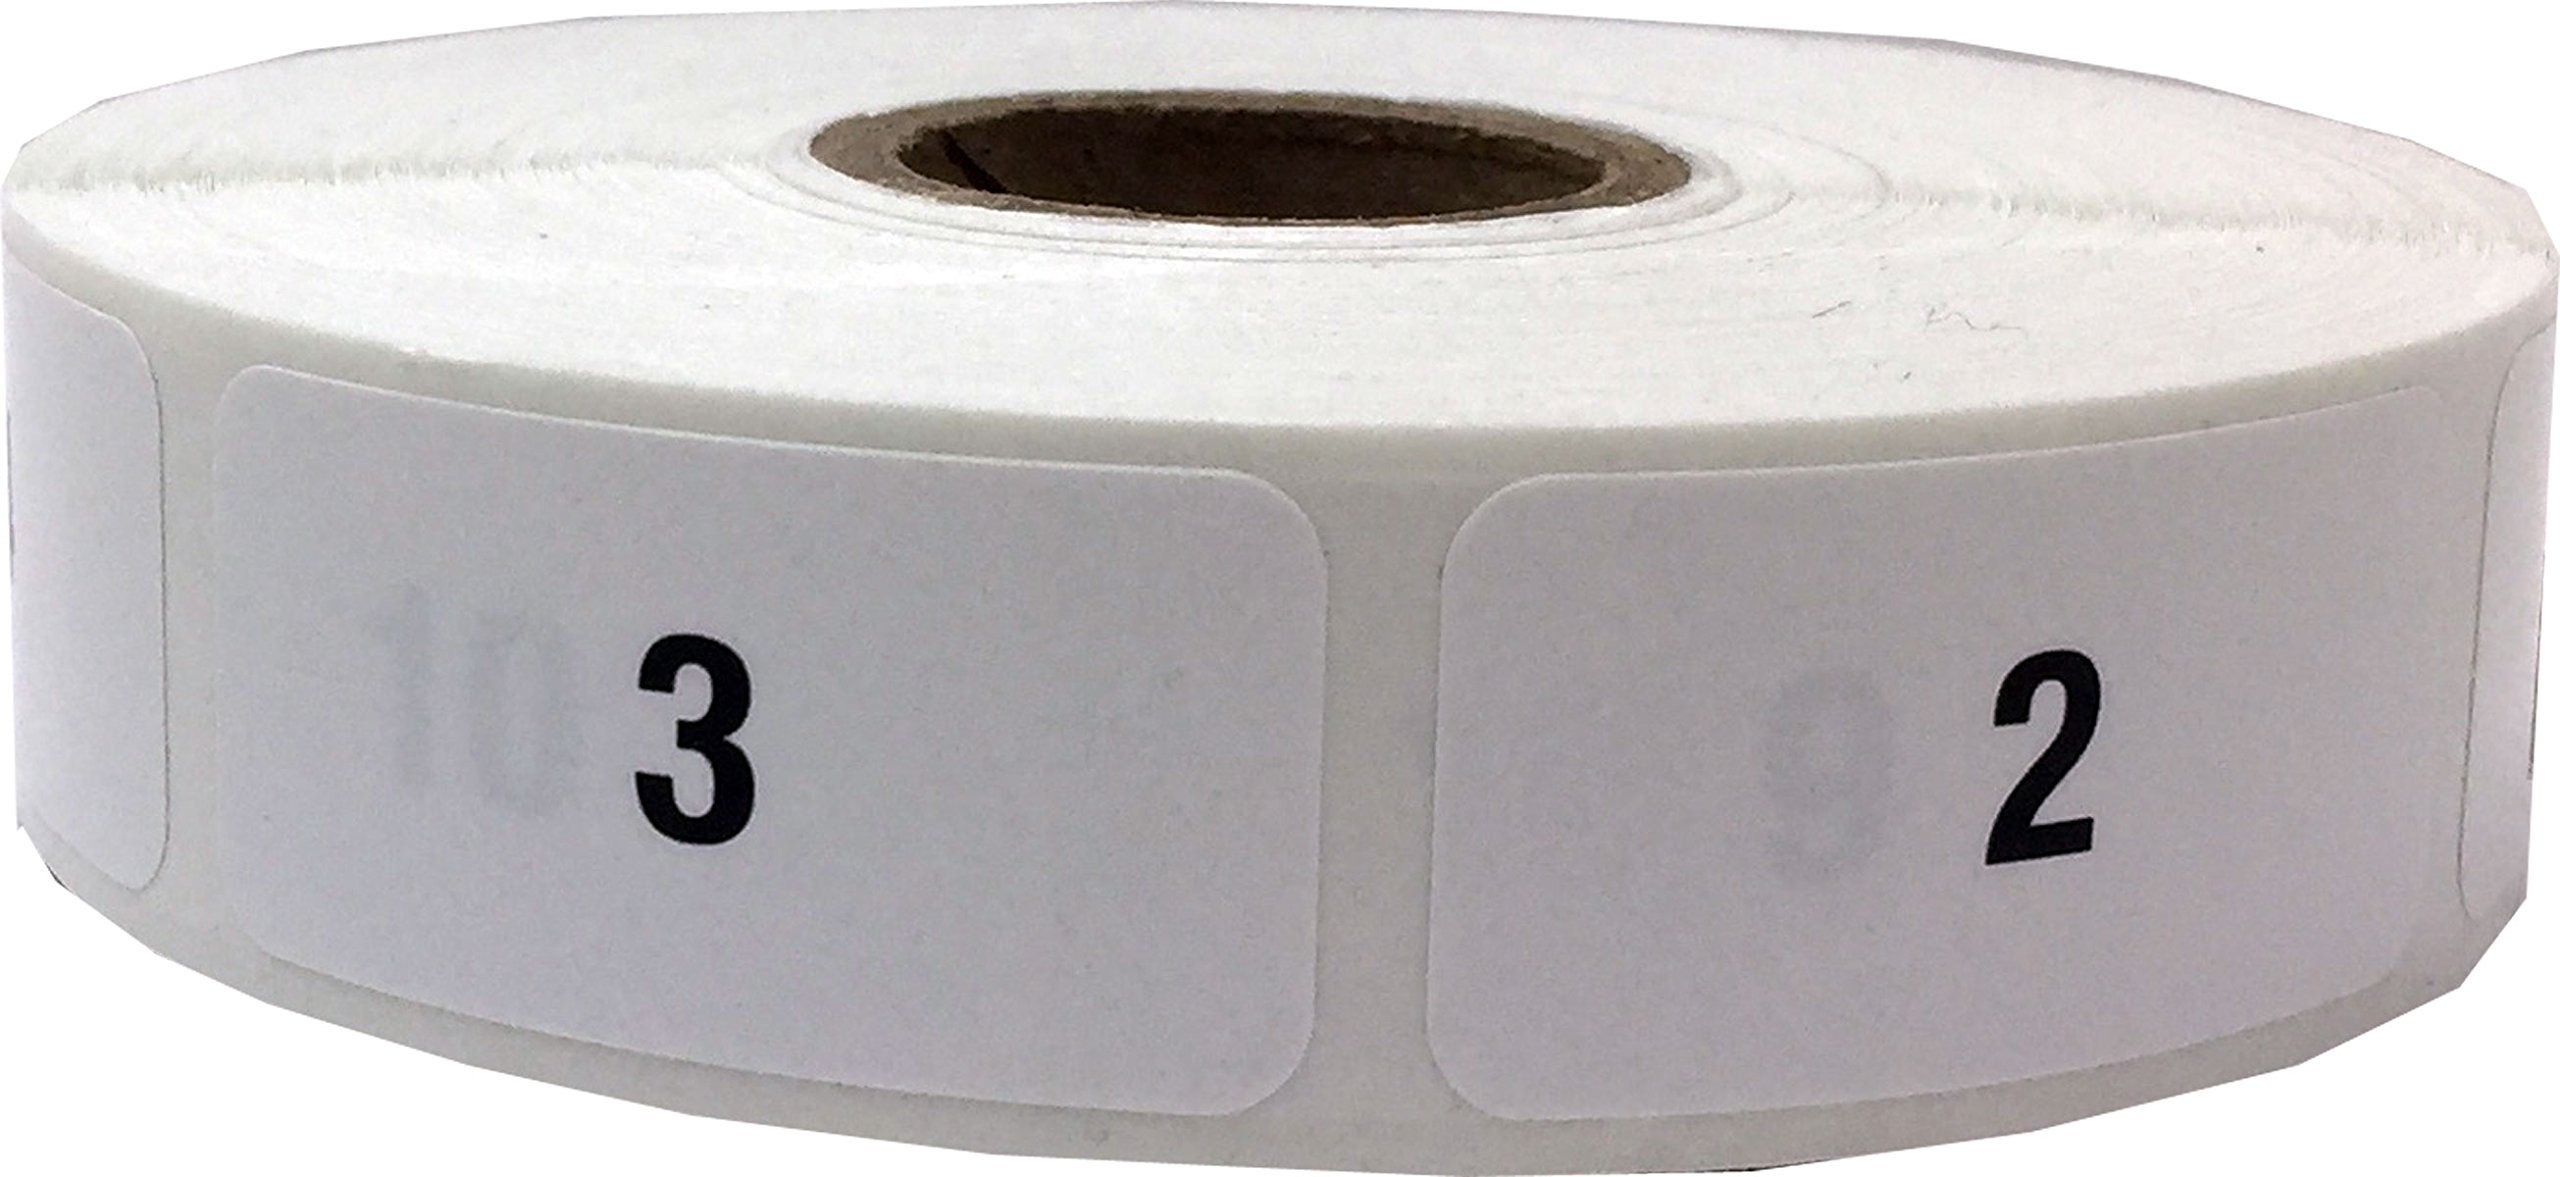 Consecutive Number Labels 1-1000 White/Black .75 x 1.5 Rectangle Small Number Stickers For Inventory